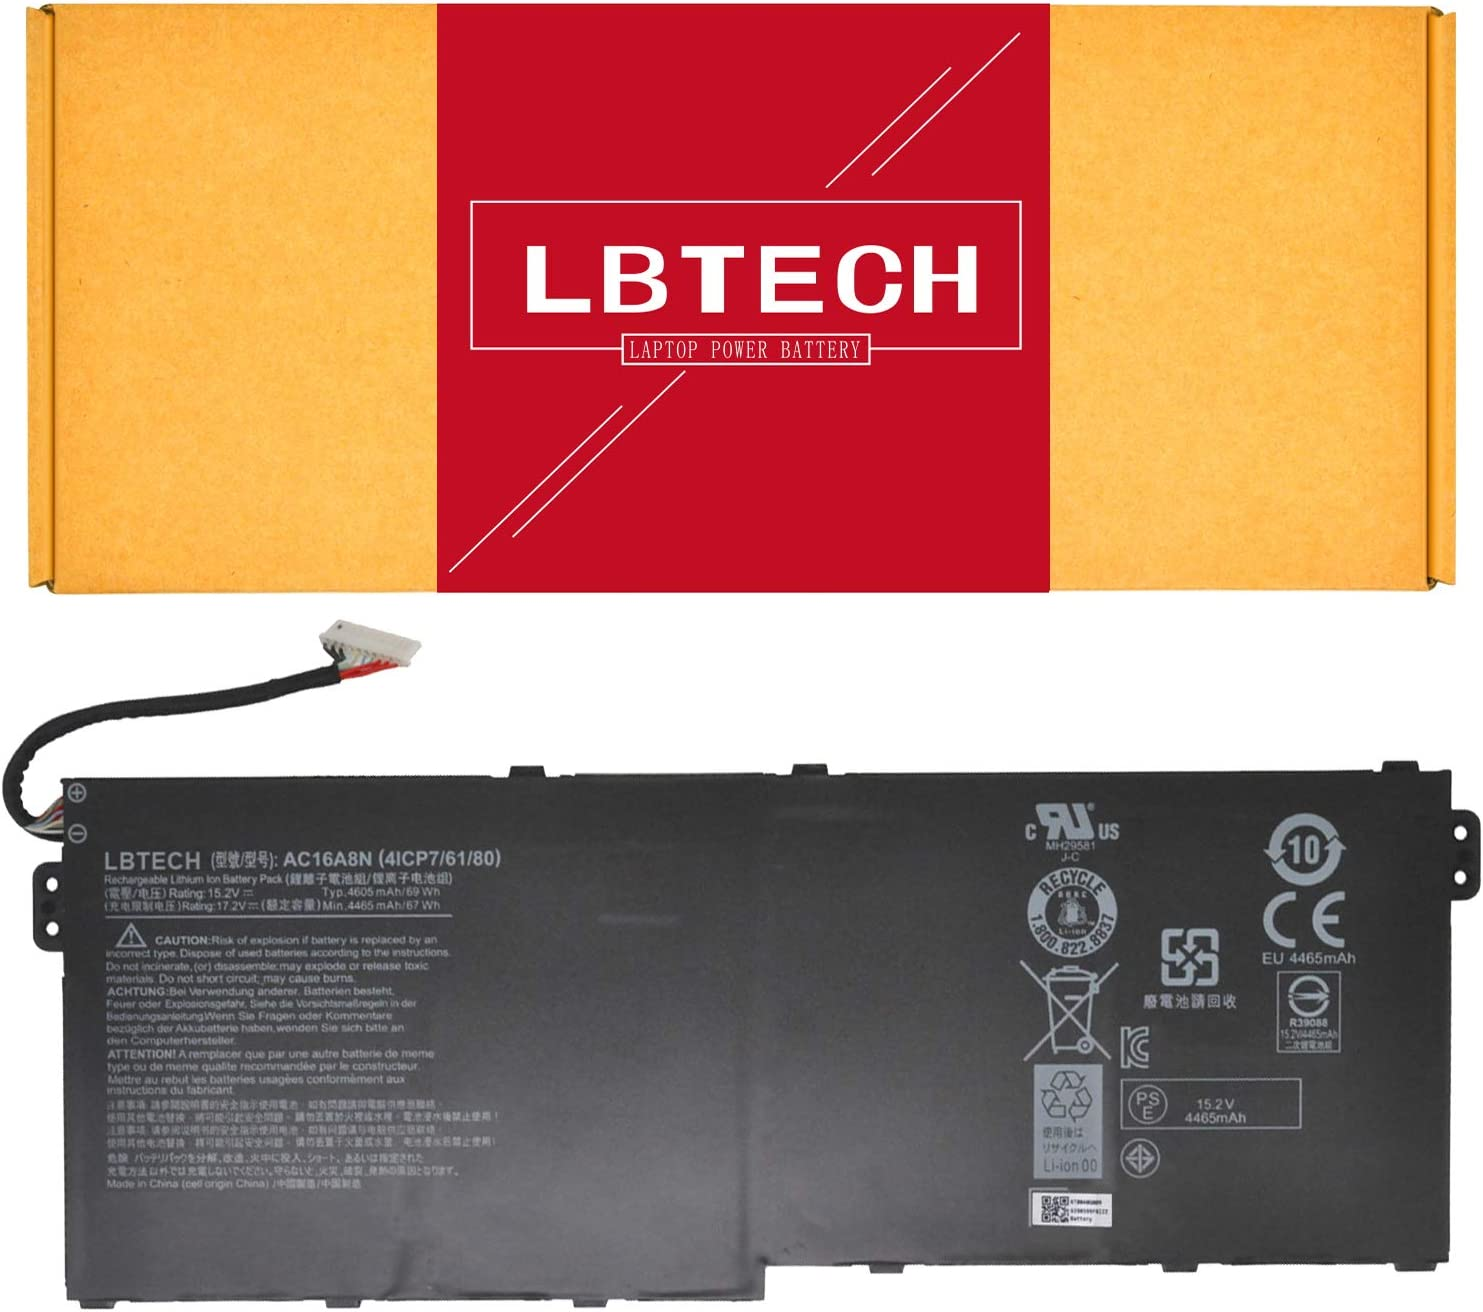 LBTECH AC16A8N Compatible Laptop Battery Replacement for Acer Aspire V15 V17 Nitro BE VN7-593G VN7-793G Series 4ICP7/61/80 15.2V 4605mAh/69Wh